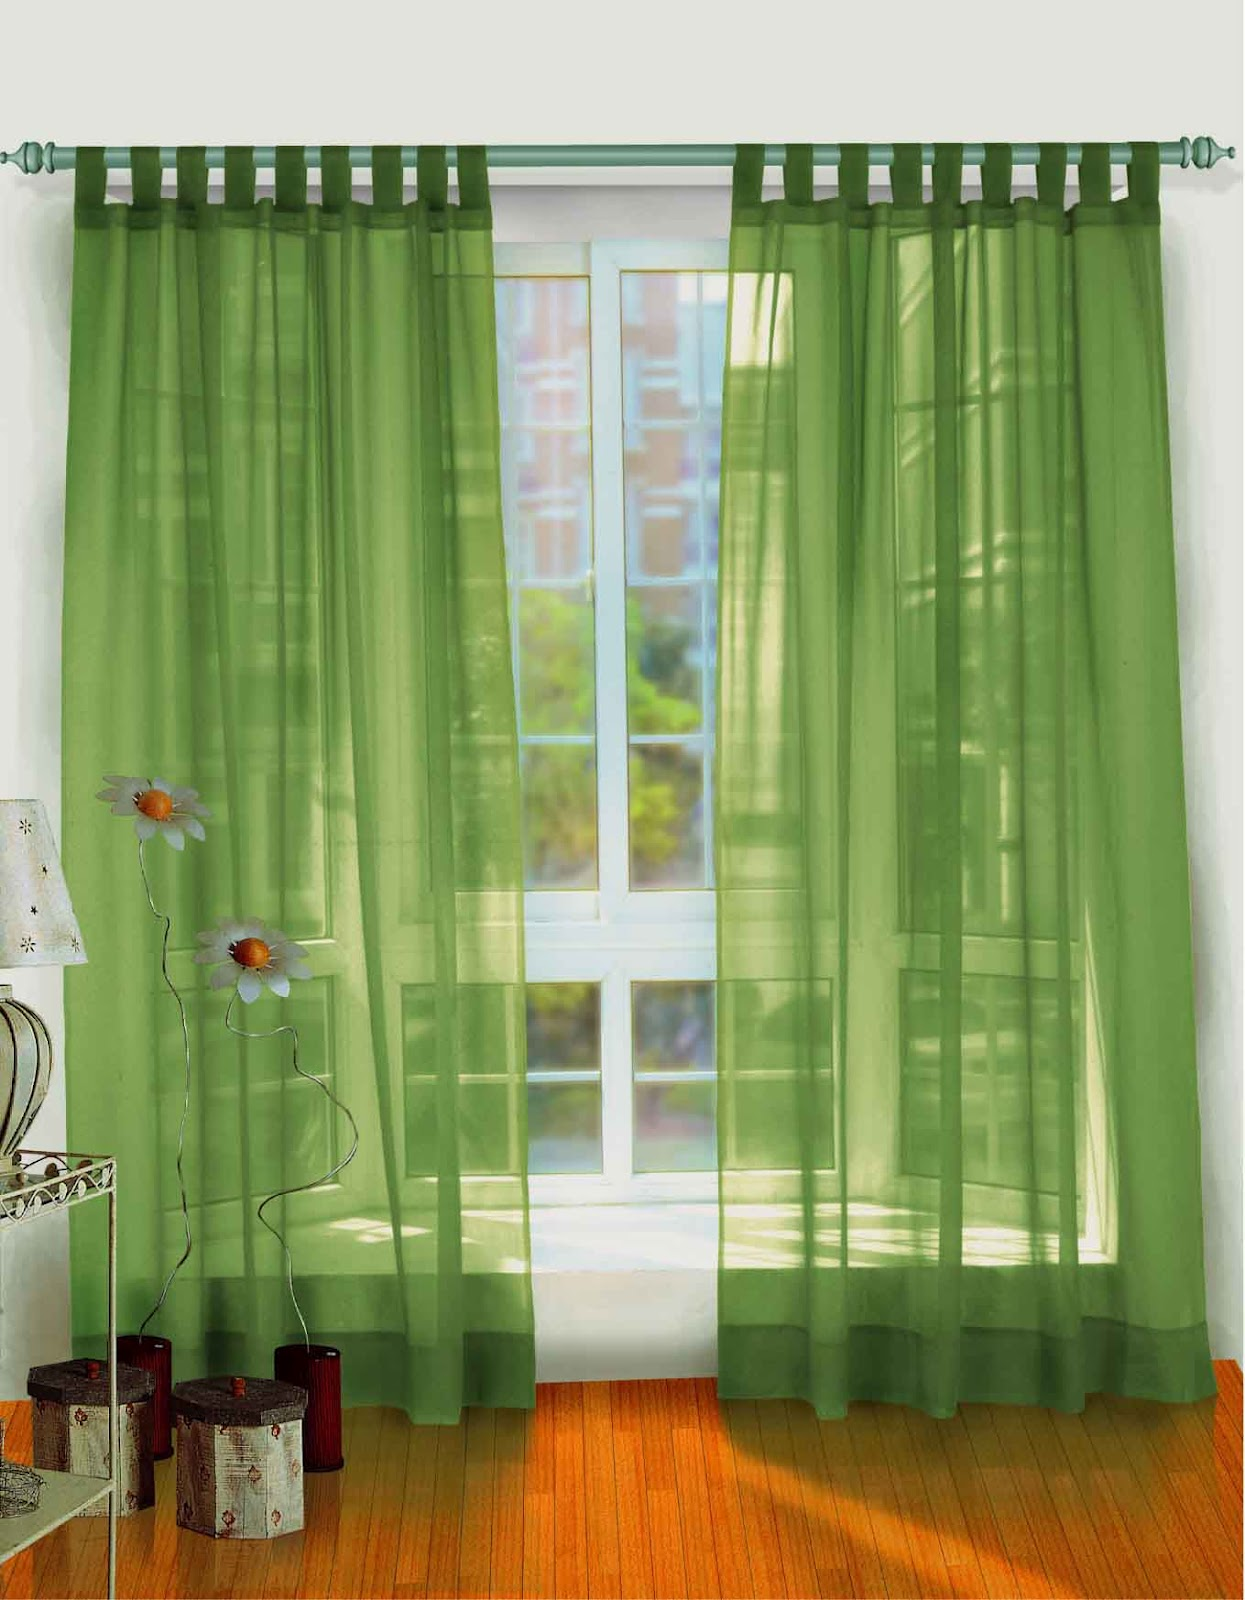 WINDOW AND DOOR CURTAINS DESIGN | Interior design ideas